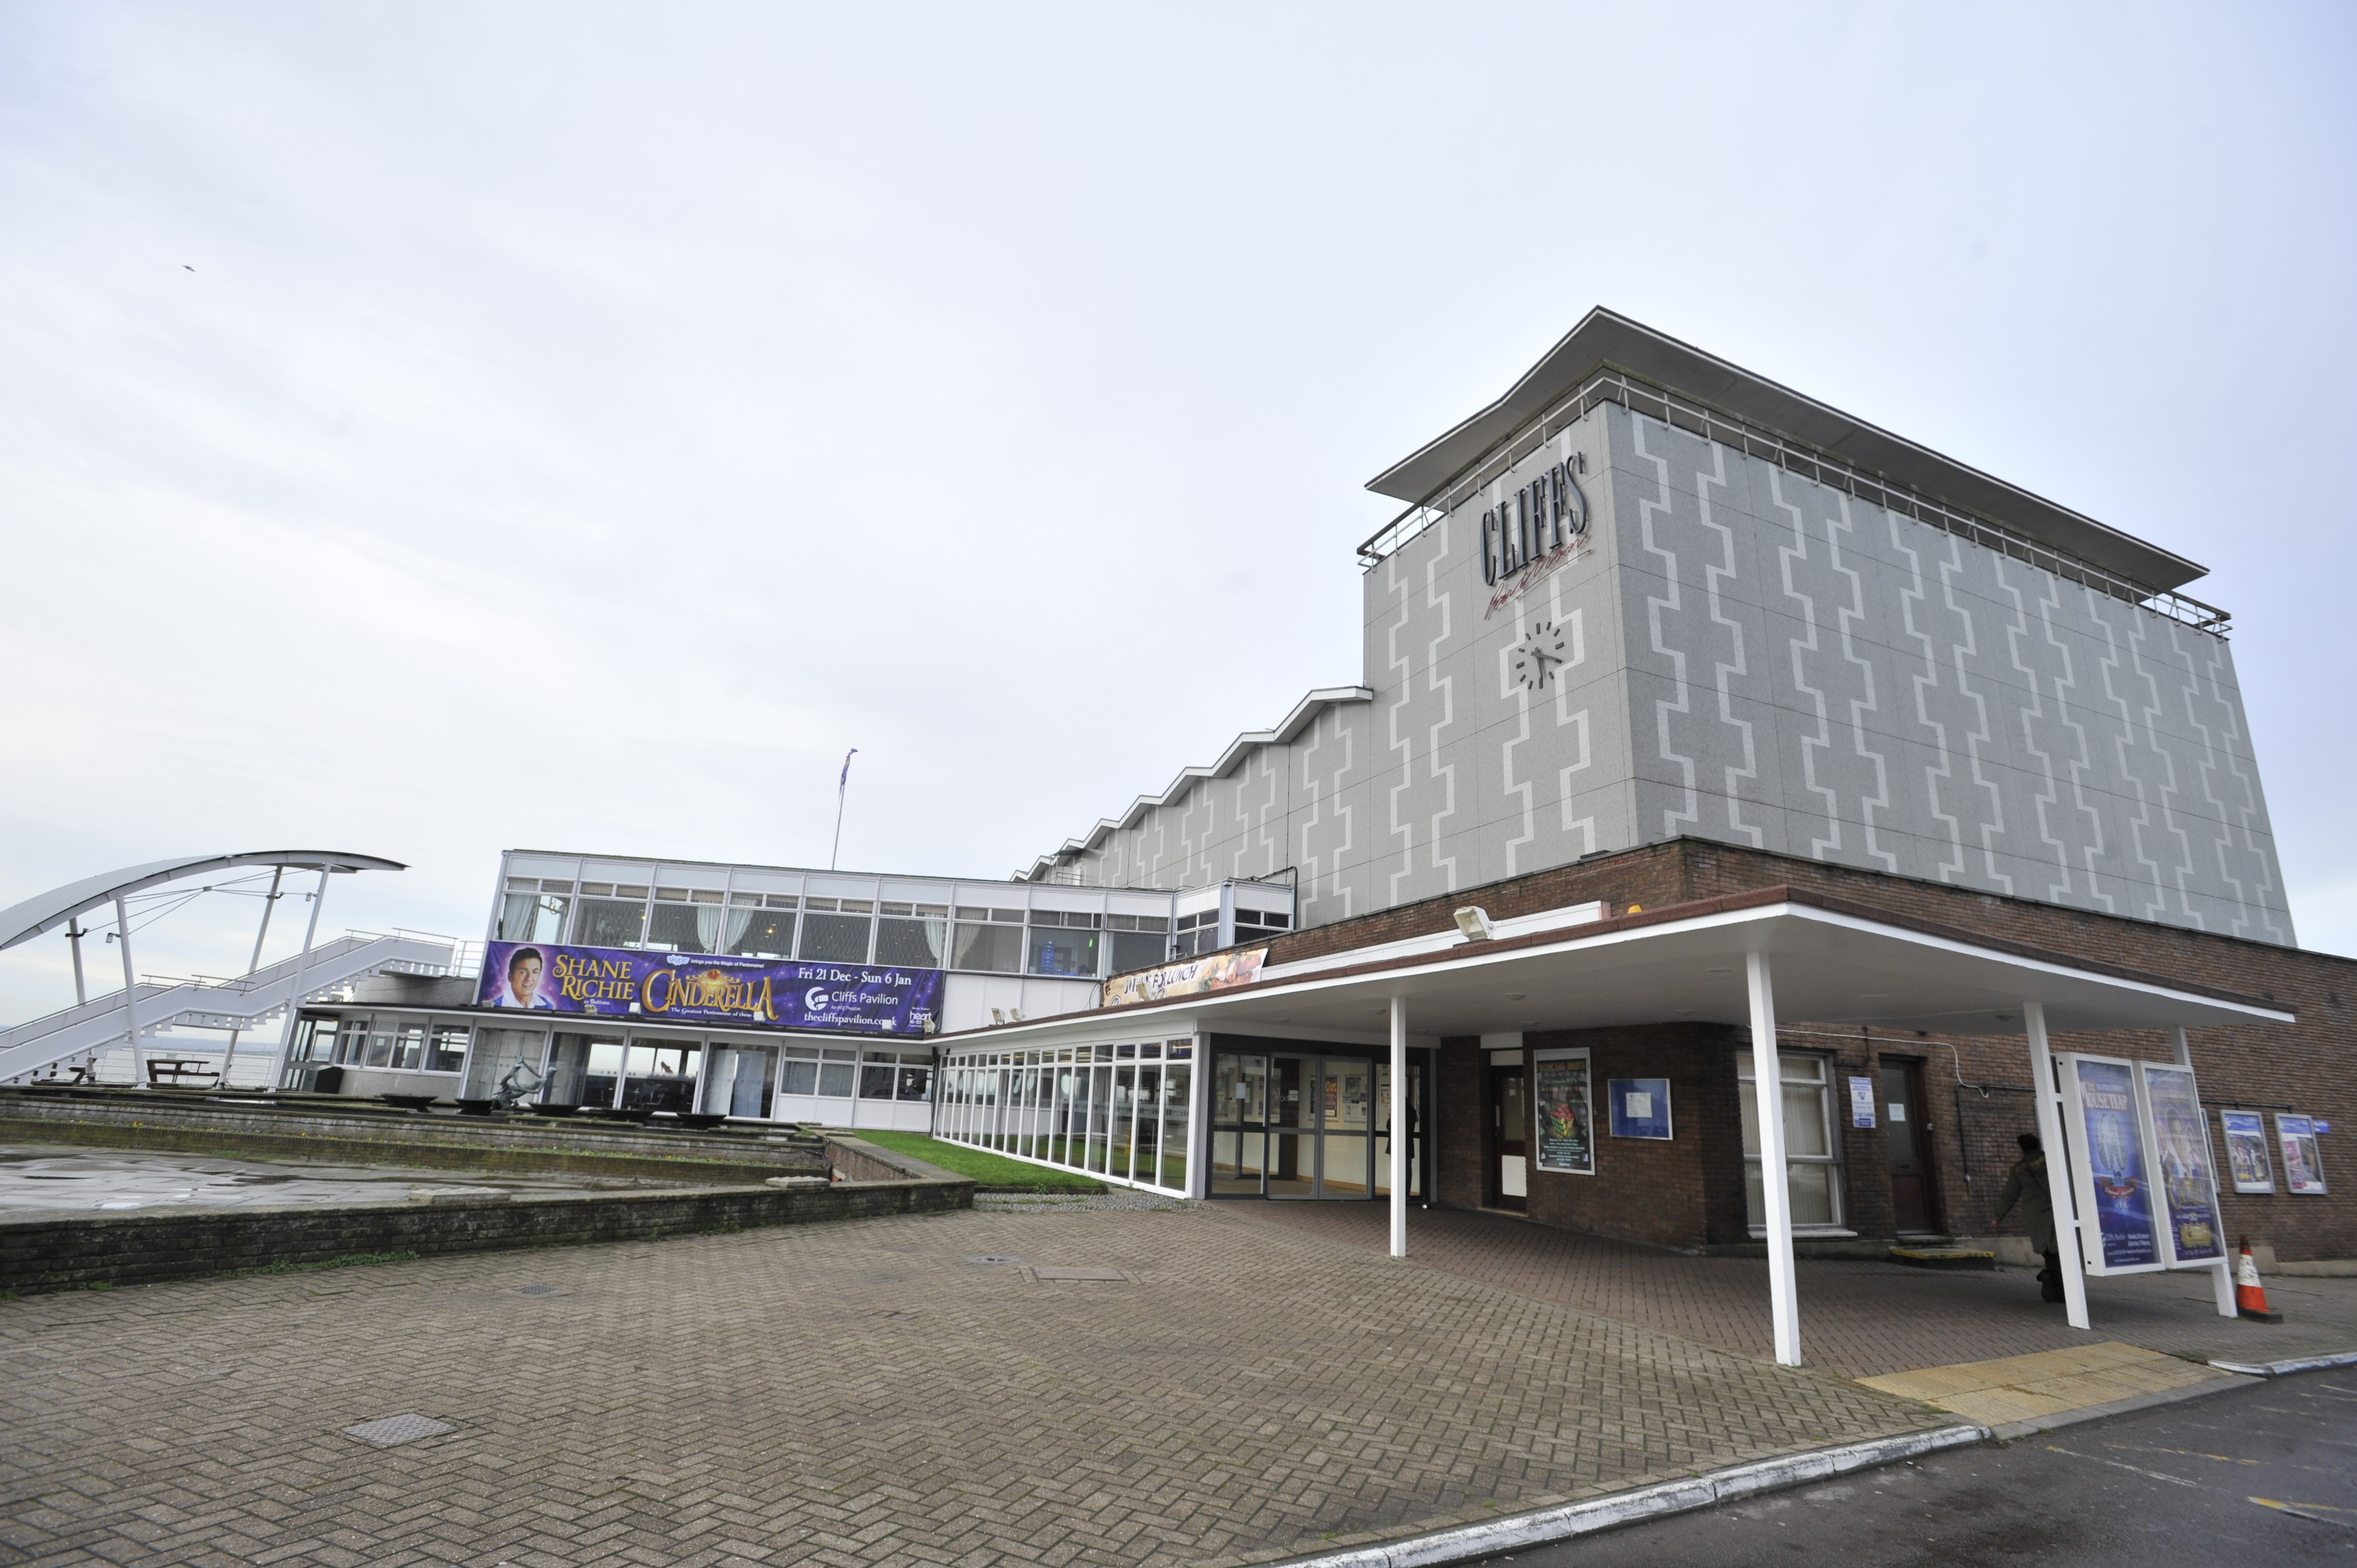 The man was found outside Cliffs Pavilion on Station Road